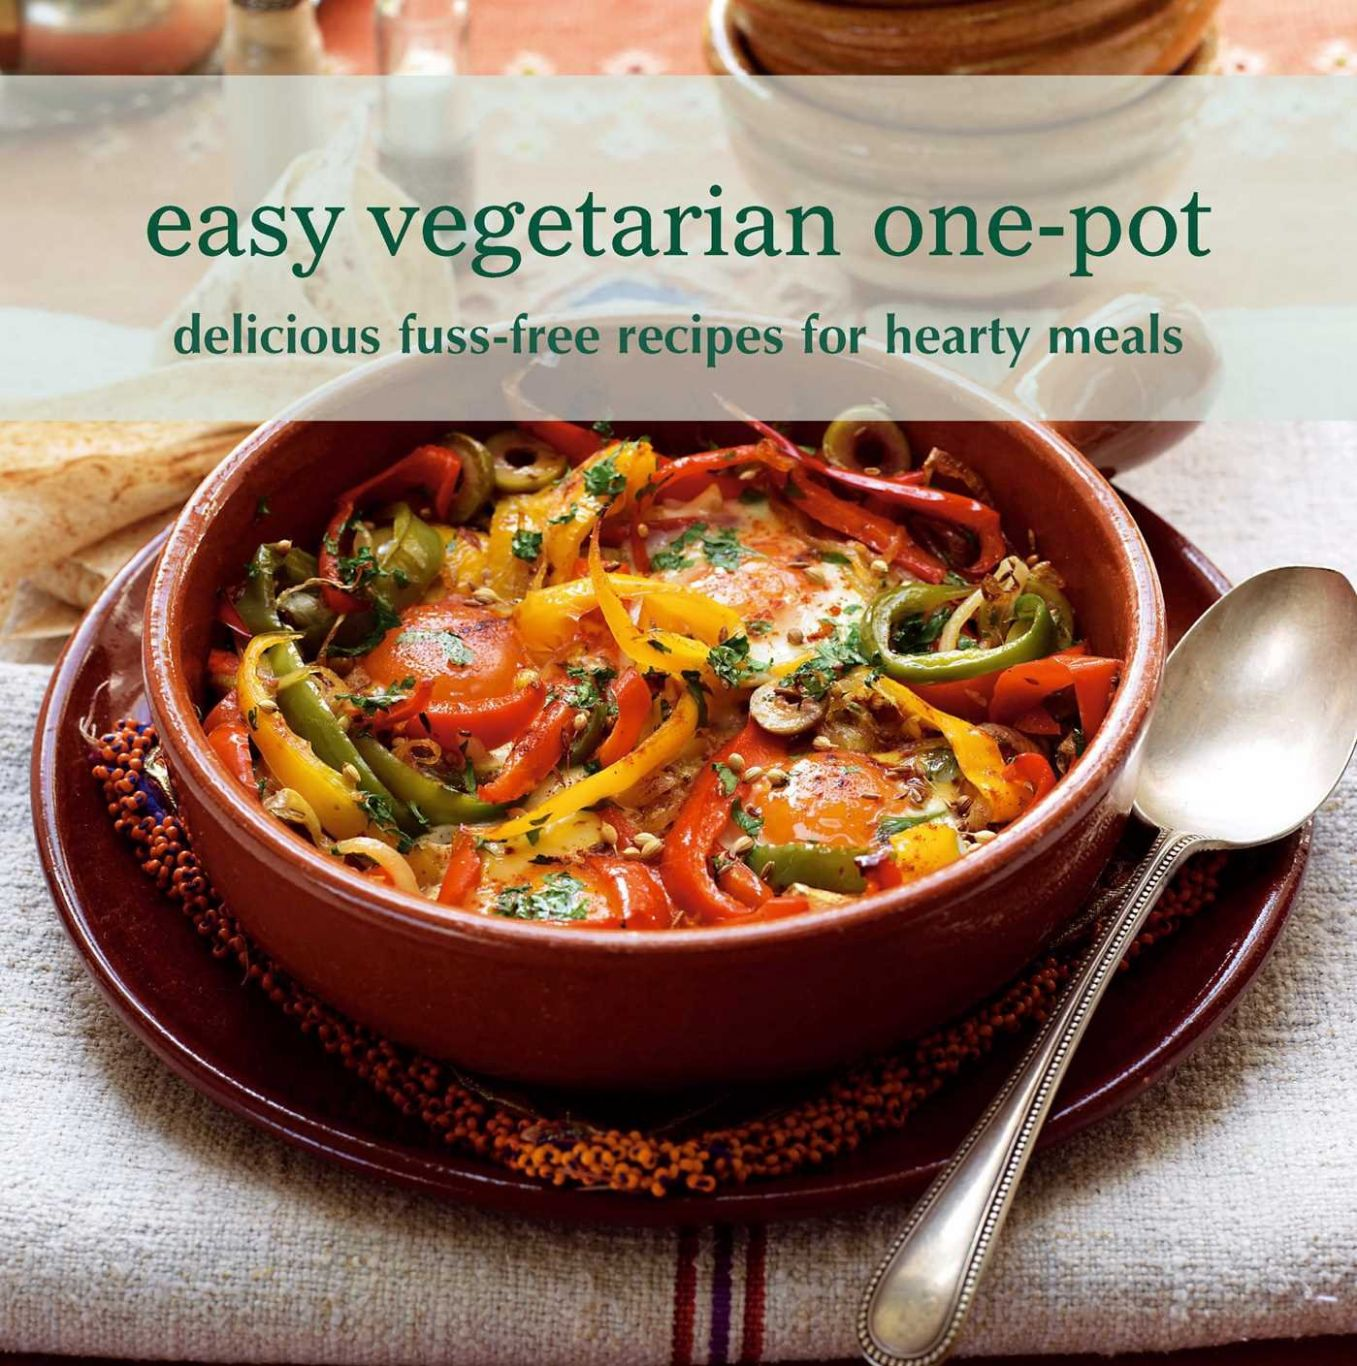 Easy Vegetarian One-Pot: Delicious fuss-free recipes for hearty ...